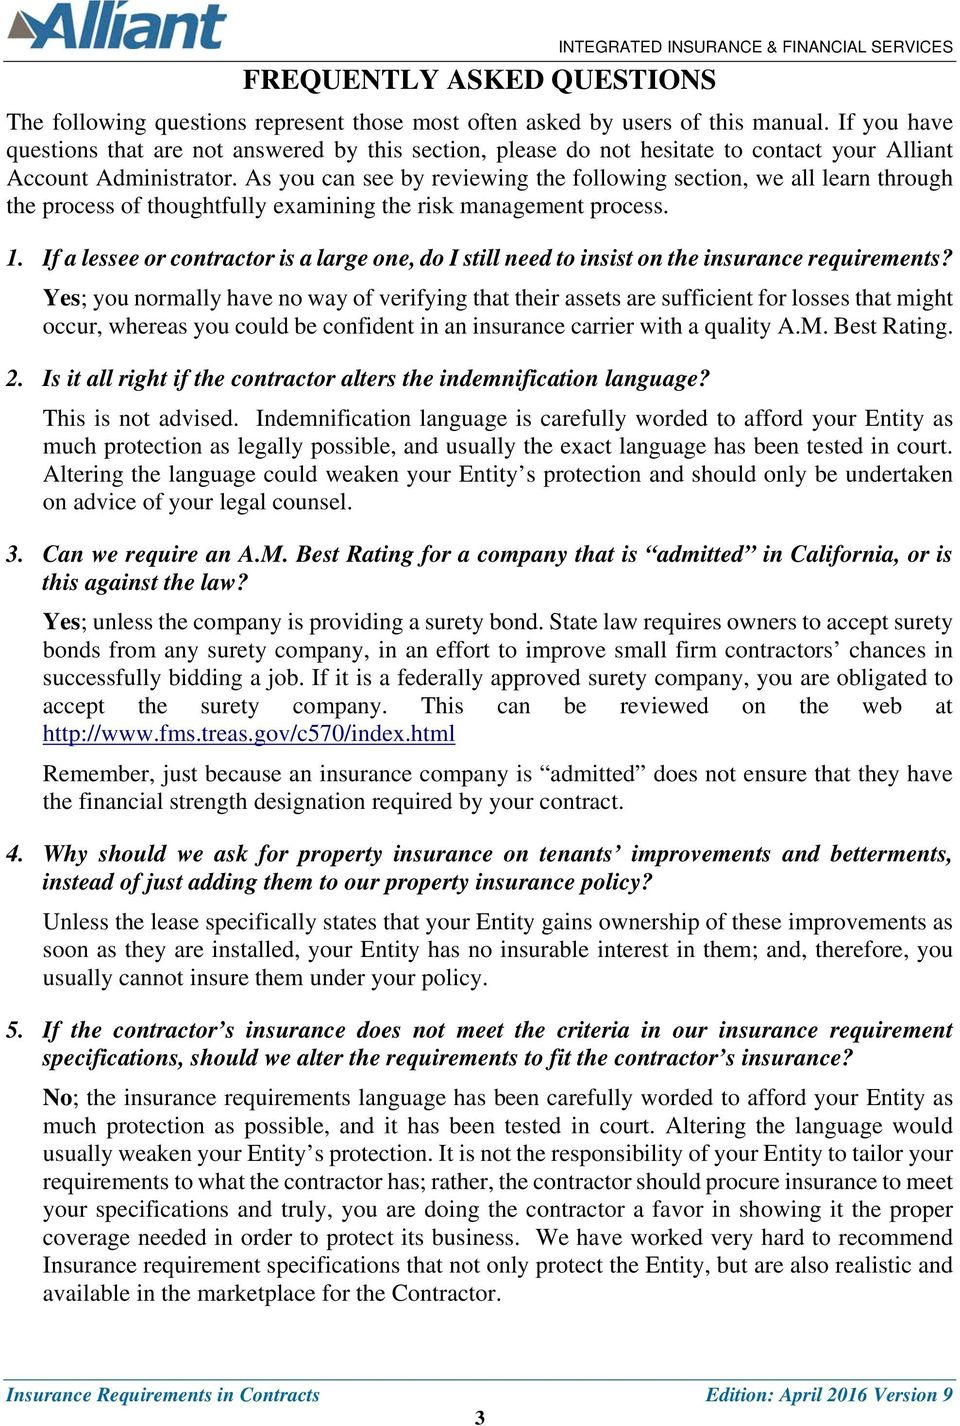 Why do you need property insurance for legal entities